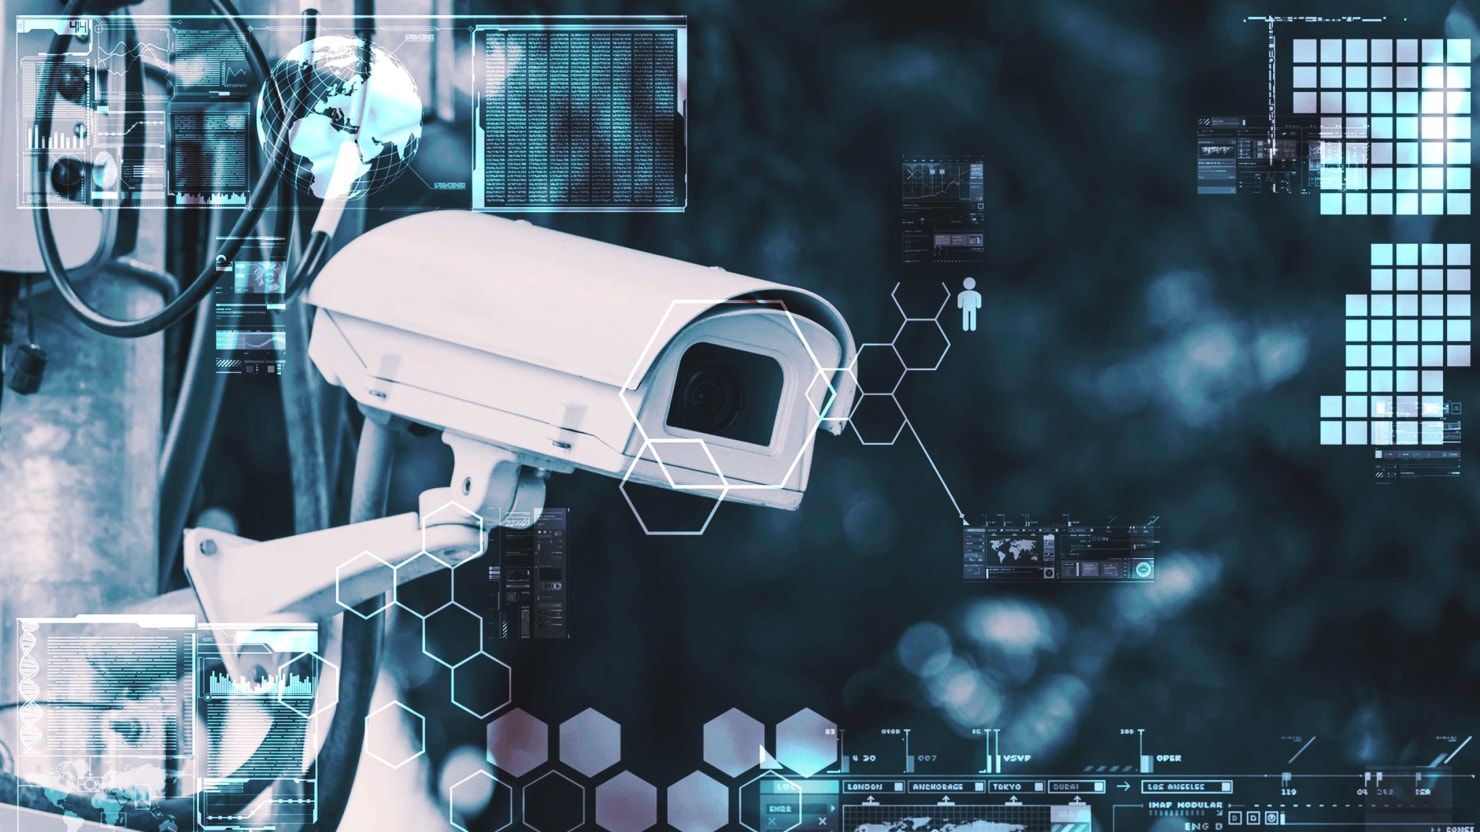 How Surveillance Cameras Have Become an Internet Superweapon